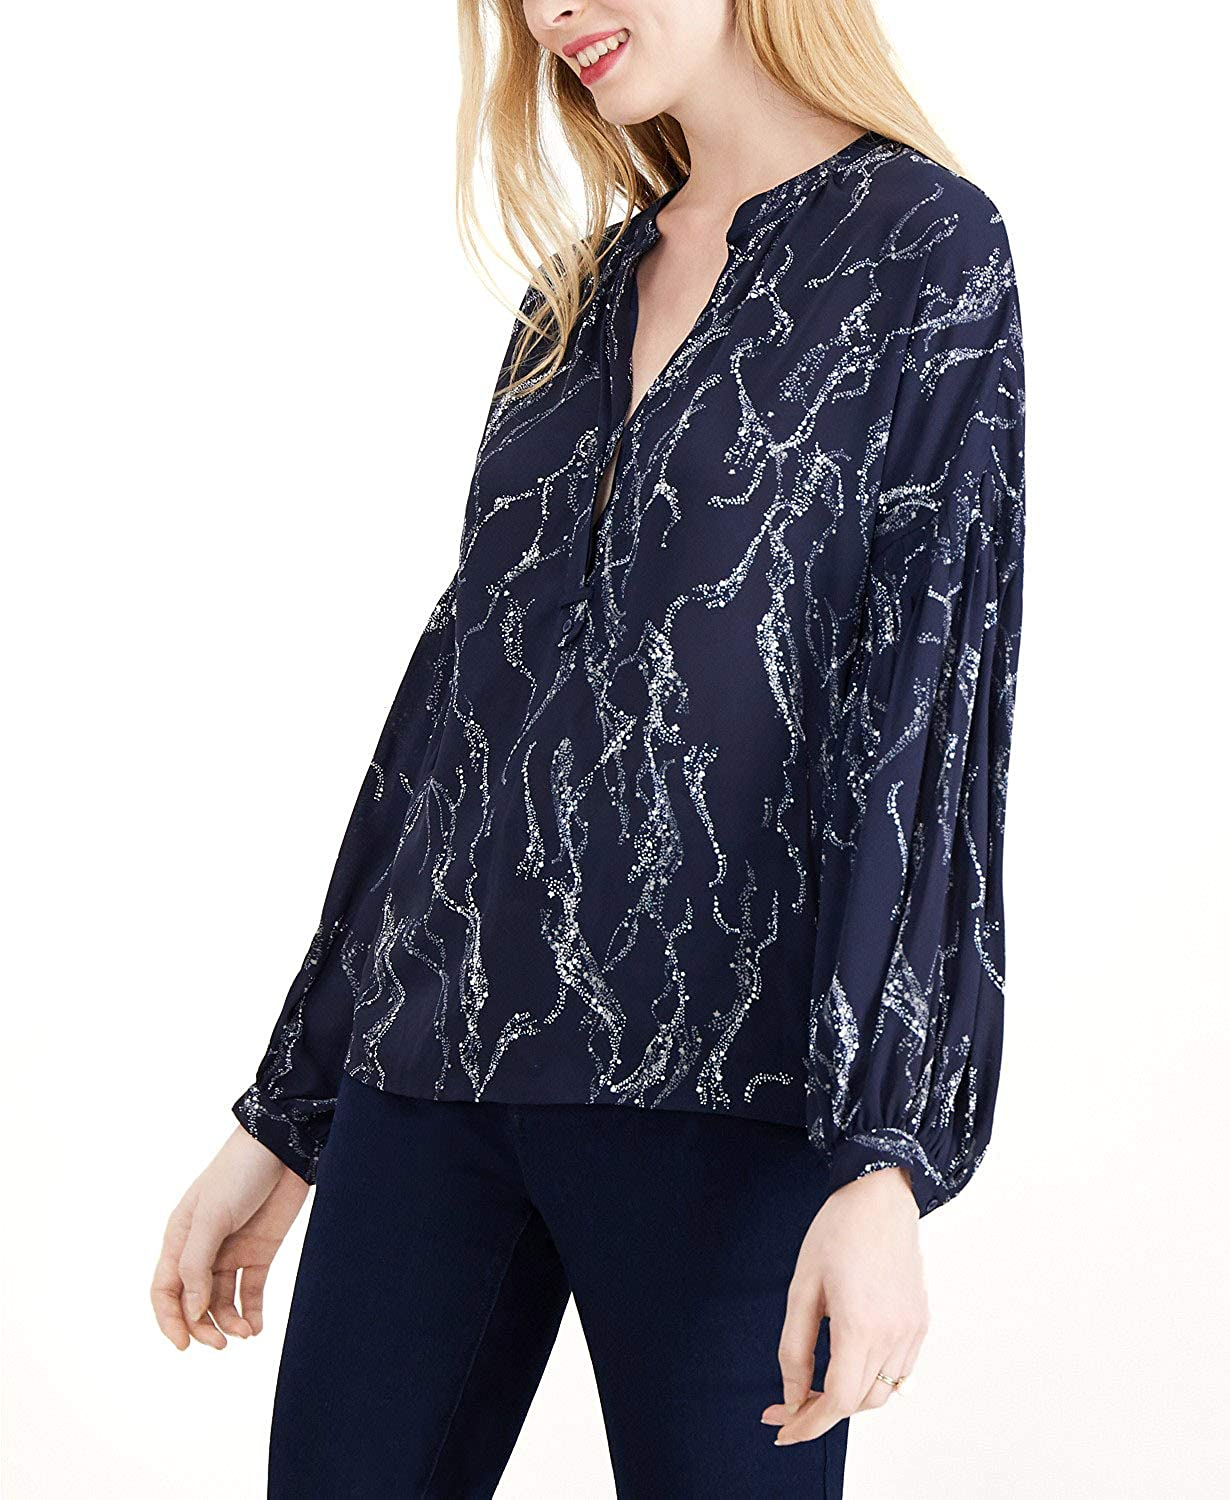 Maison Jules Womens Printed Top Button Down Blouse